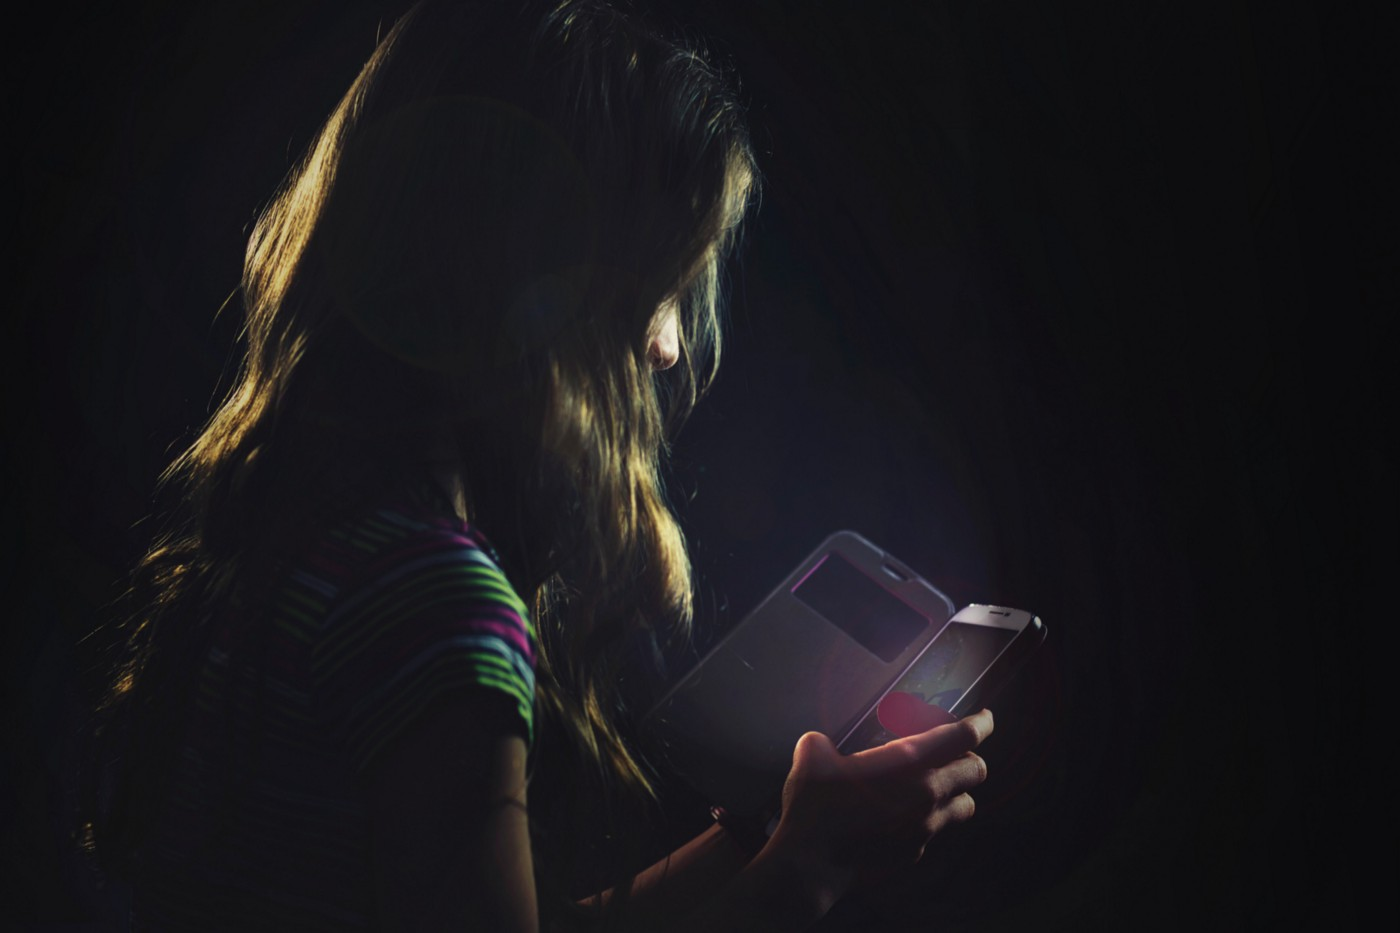 Dark photo of a young girl on a smartphone.